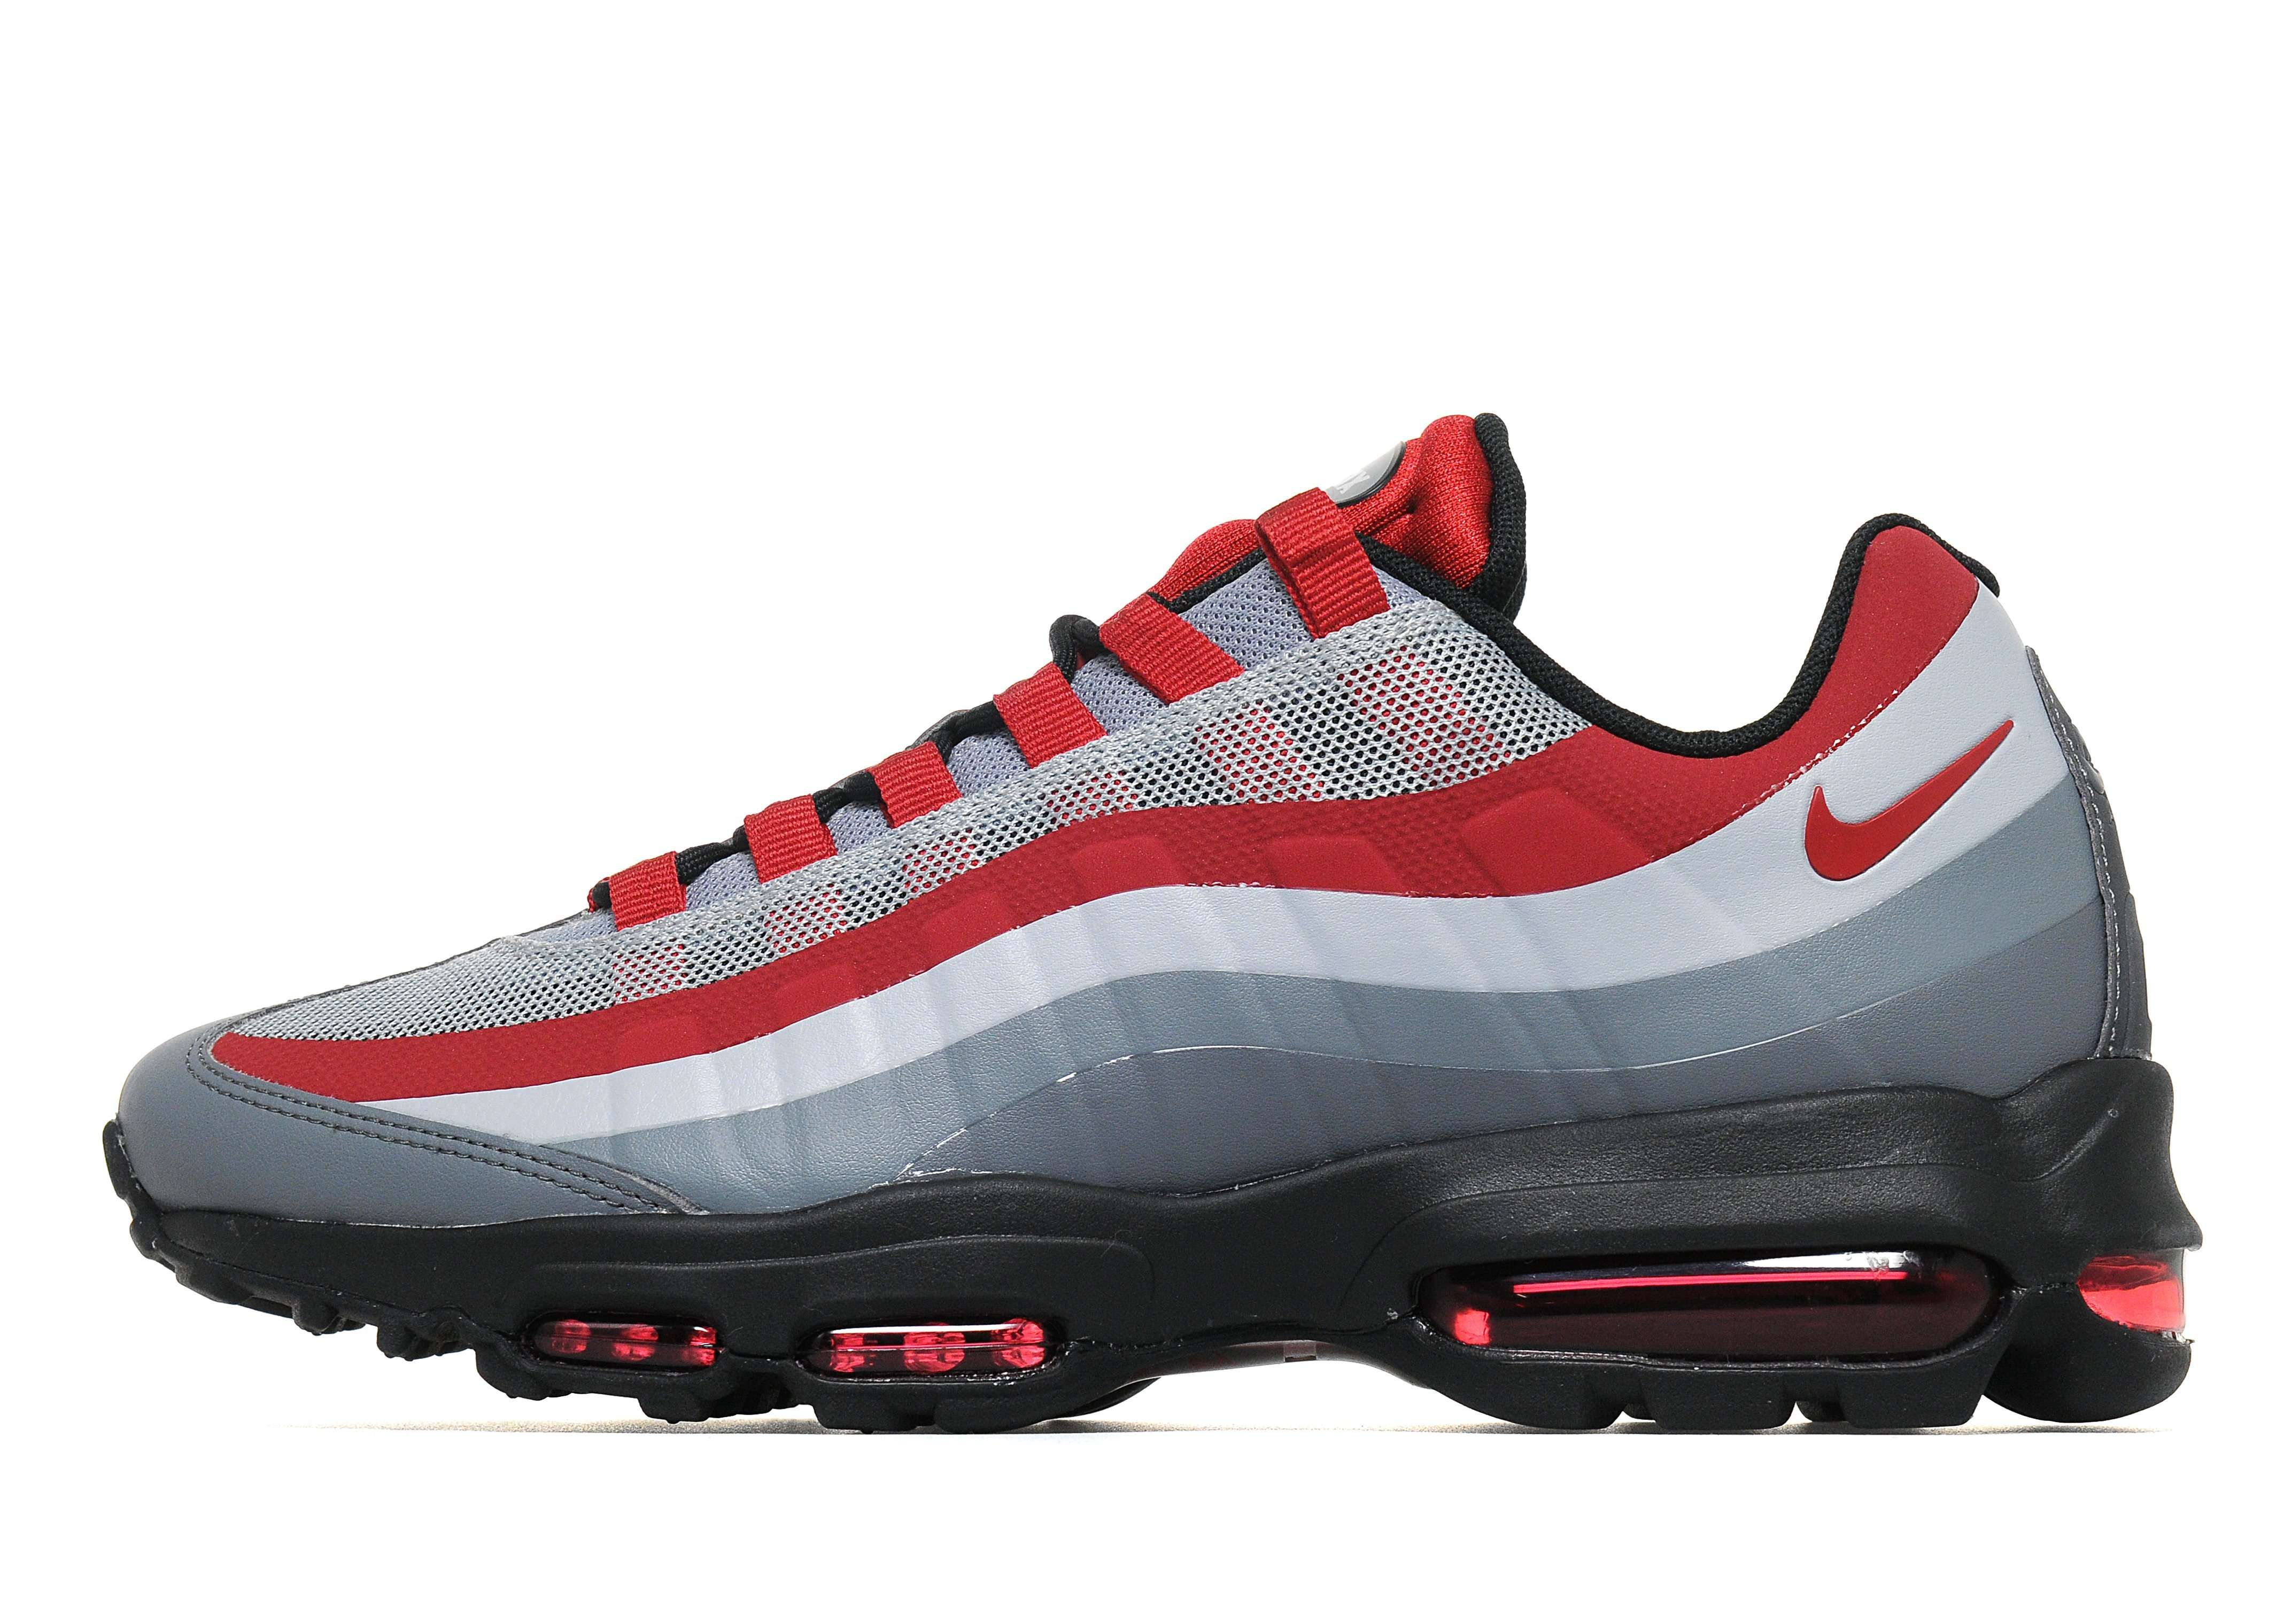 new styles 8e128 34023 Nike Air Max 95 Ultra Essential - Shop online for Nike Air Max 95 Ultra  Essential